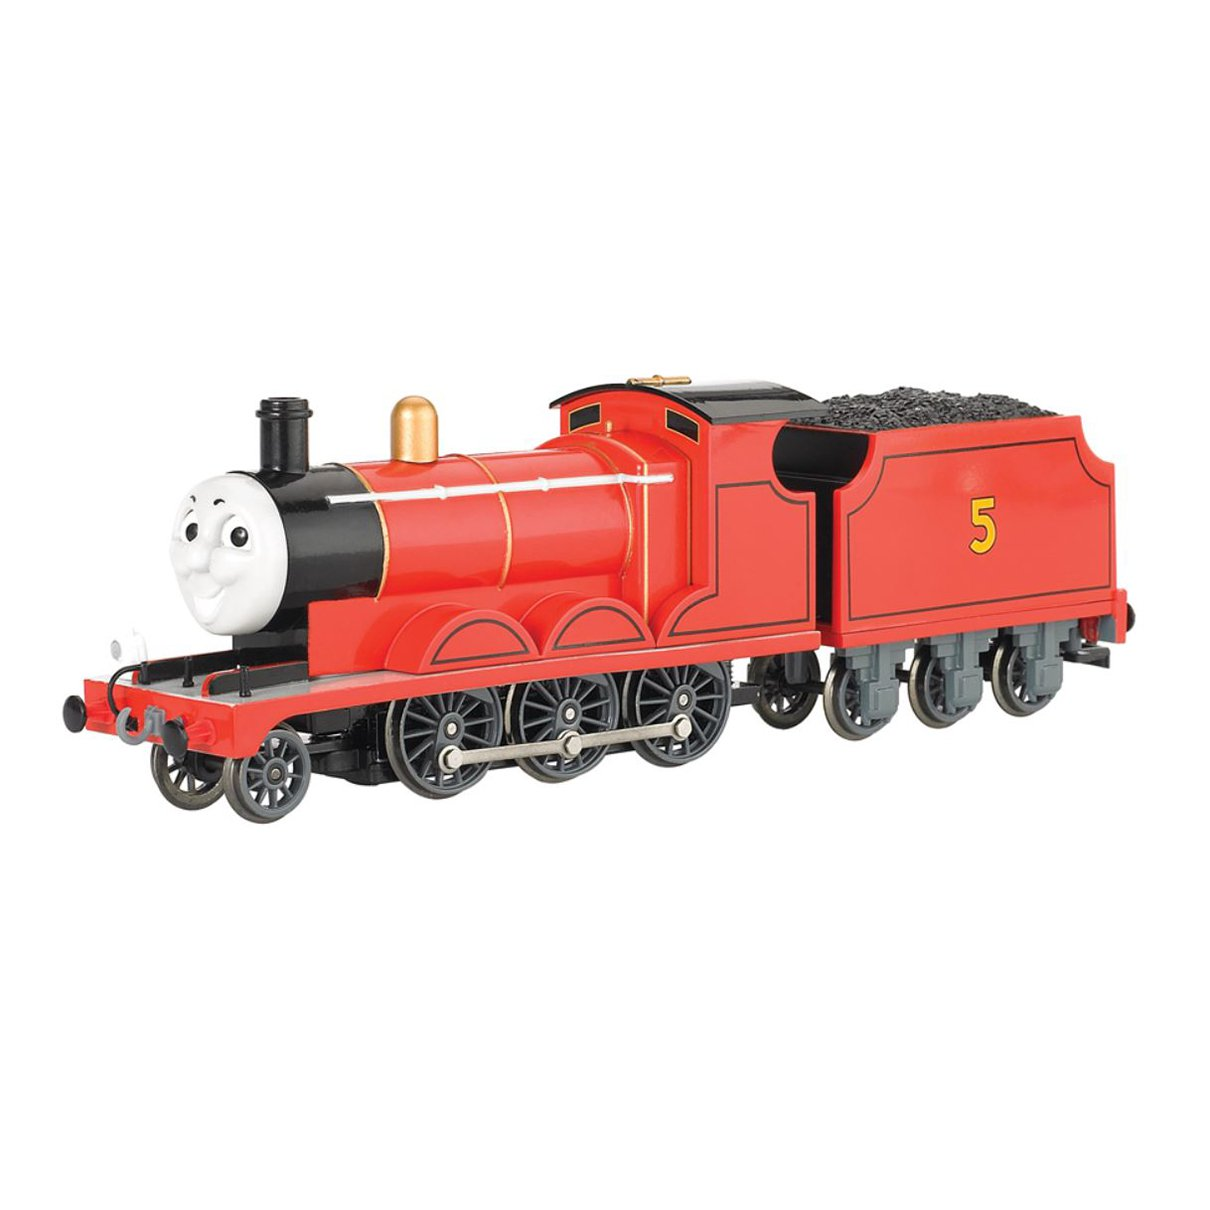 Bachmann Trains Thomas and Friends James The Red Engine Locomotive with Moving Eyes, HO... by Bachmann